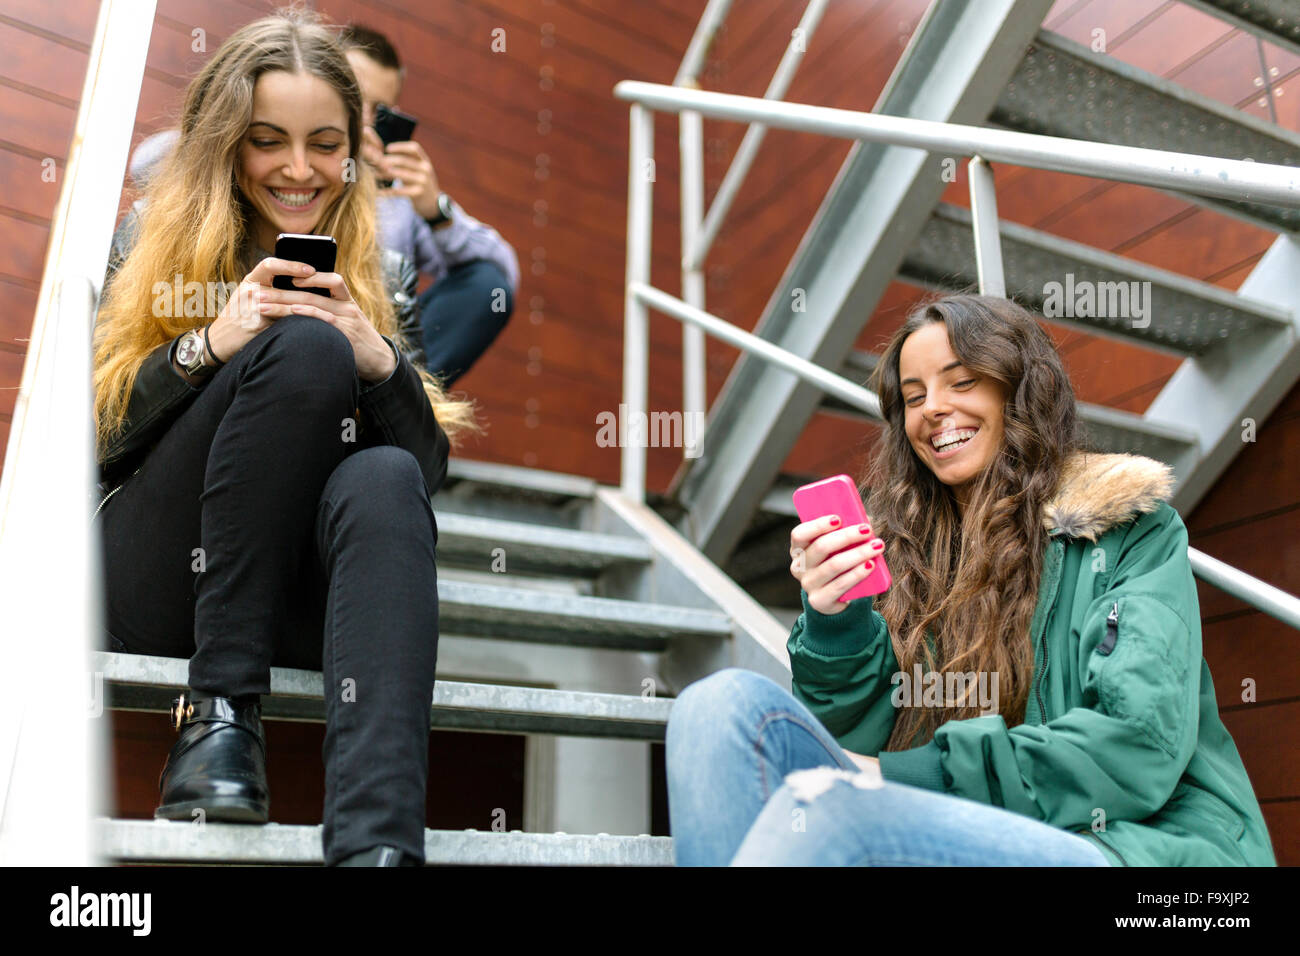 Three friends hanging around with cell phones oudoors - Stock Image